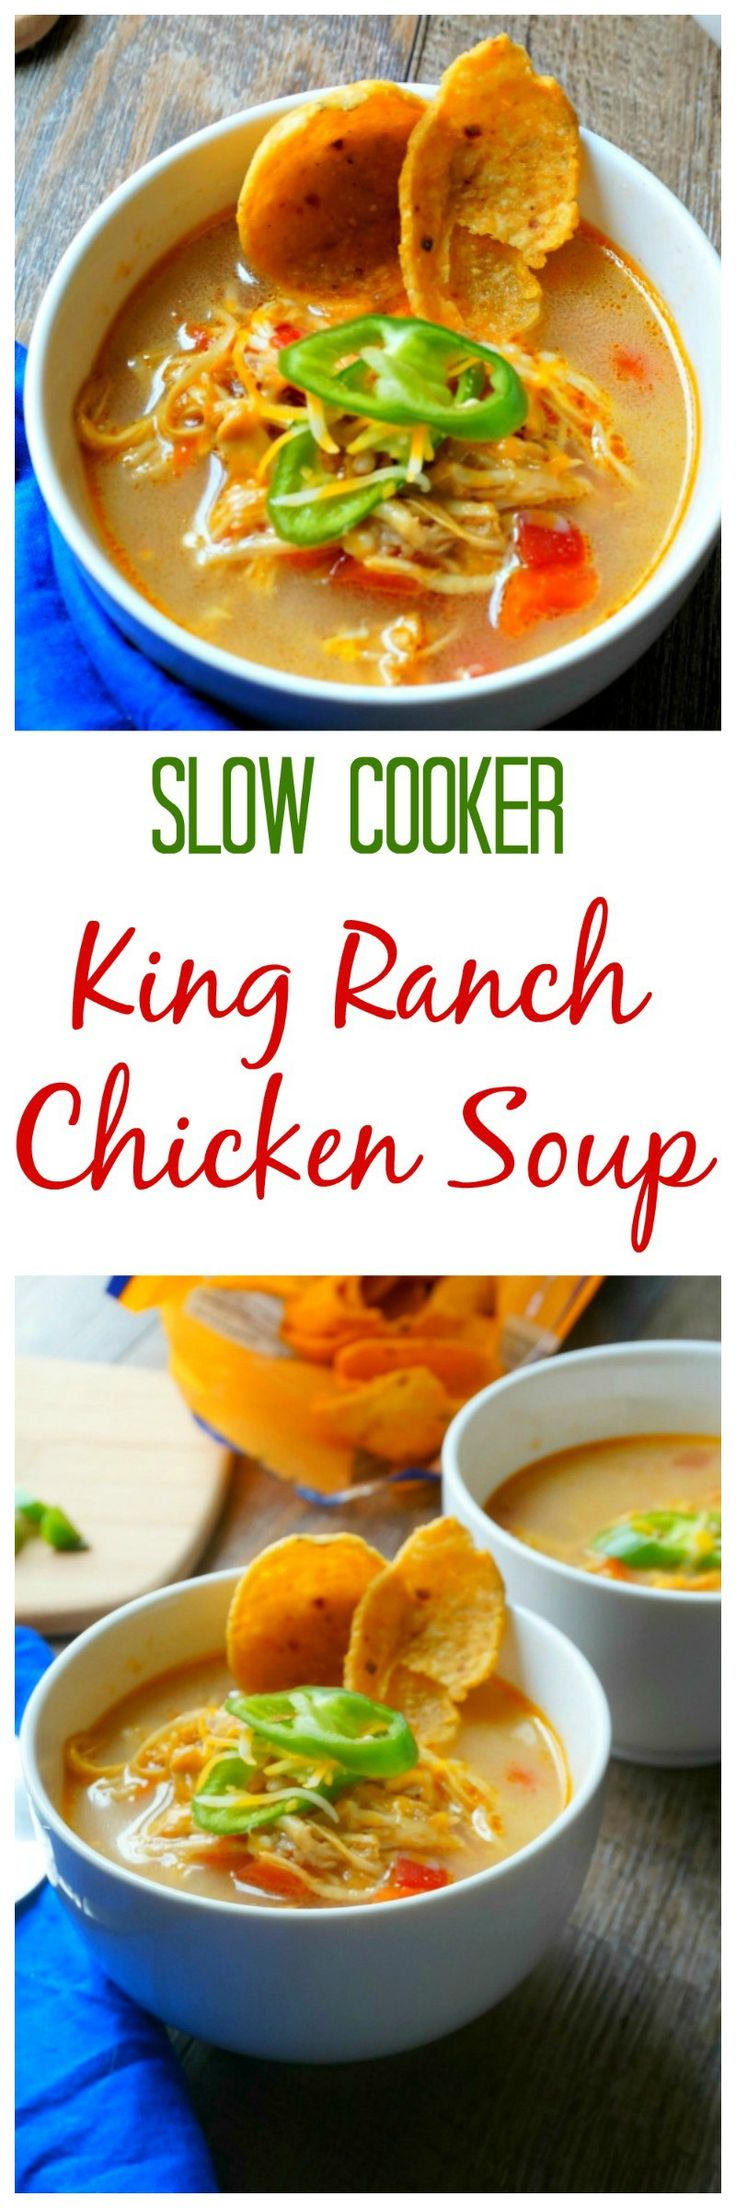 Slow Cooker King Ranch Chicken Soup: The slow cooker works its magic to create a creamy, spicy, and hearty Tex-Mex chicken soup.